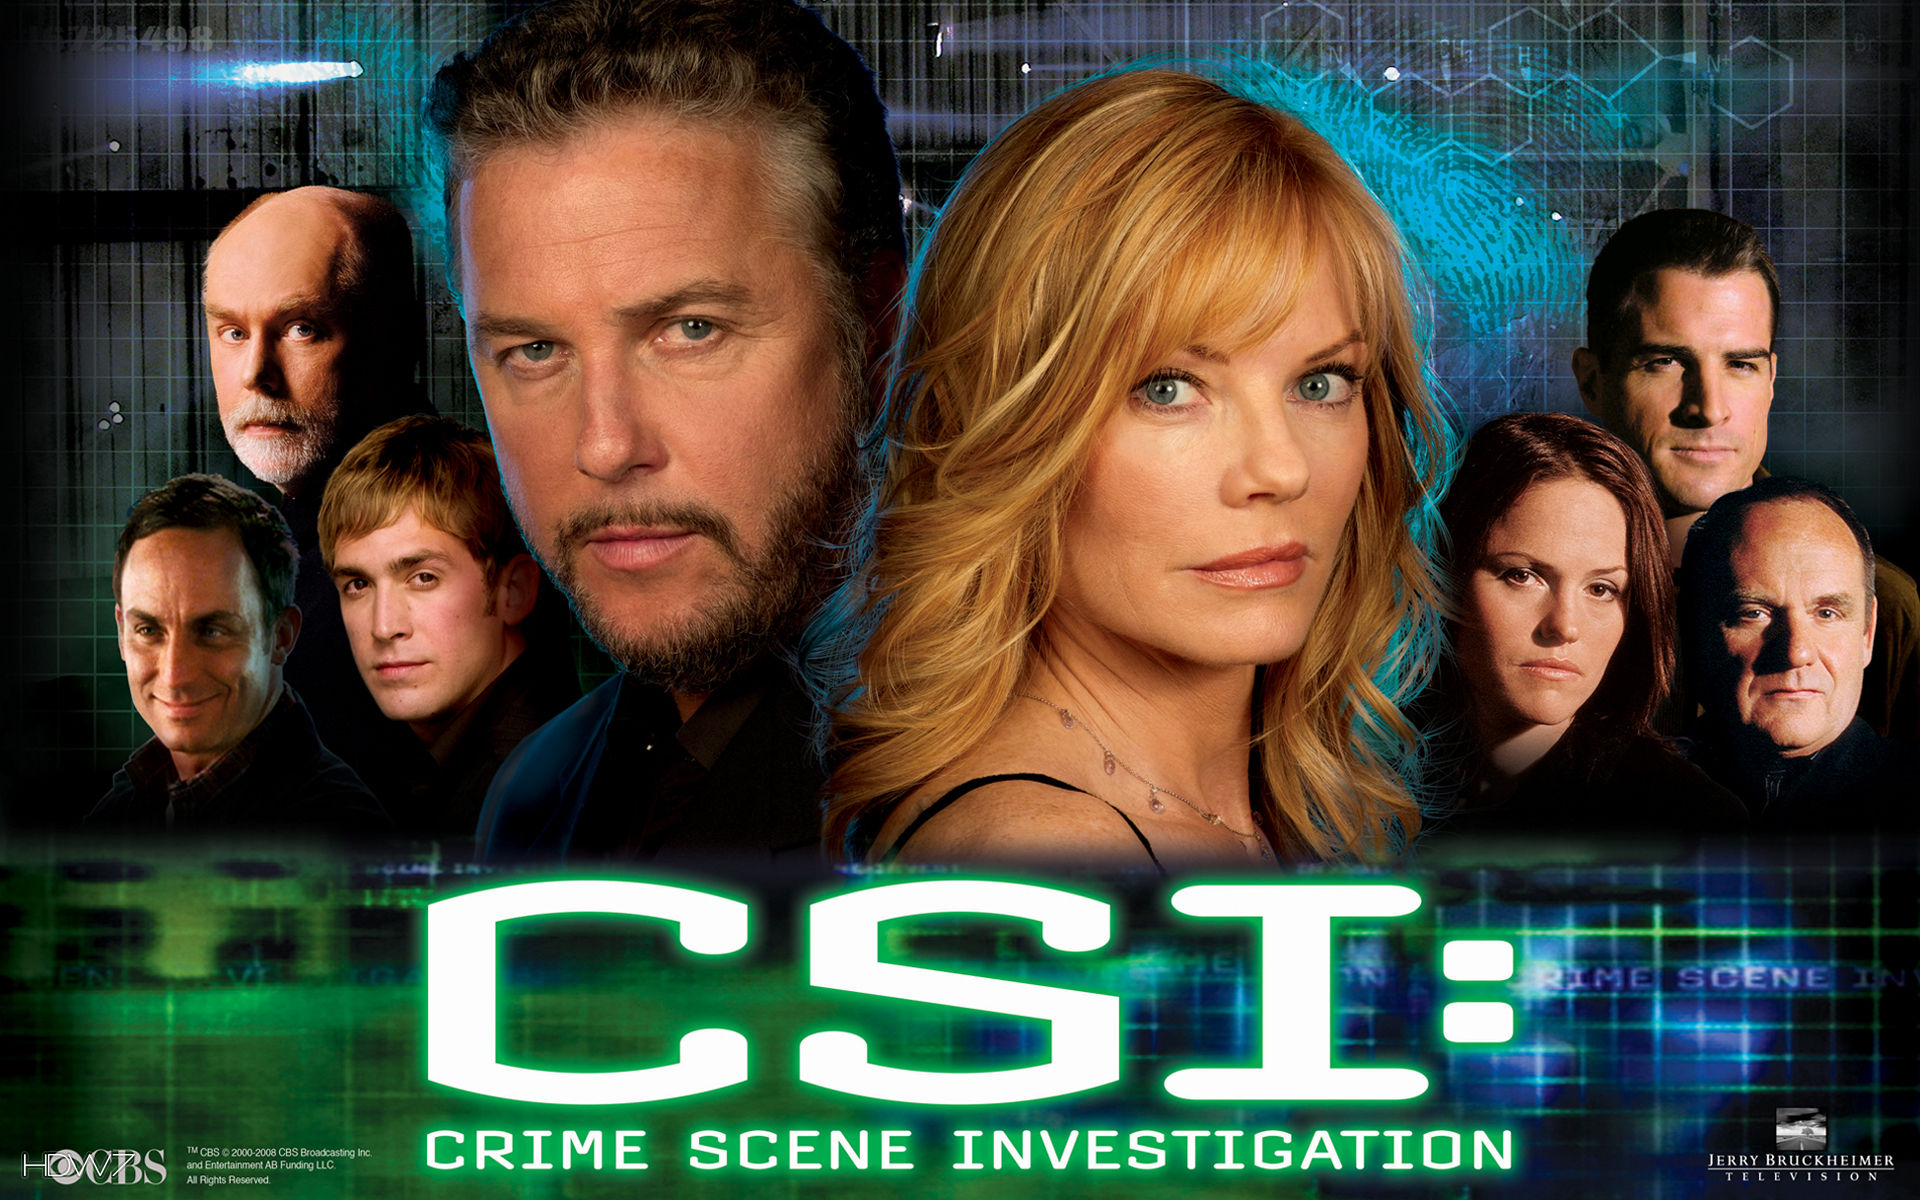 crime scene investigation tv series show HD wallpaper gallery 163 1920x1200